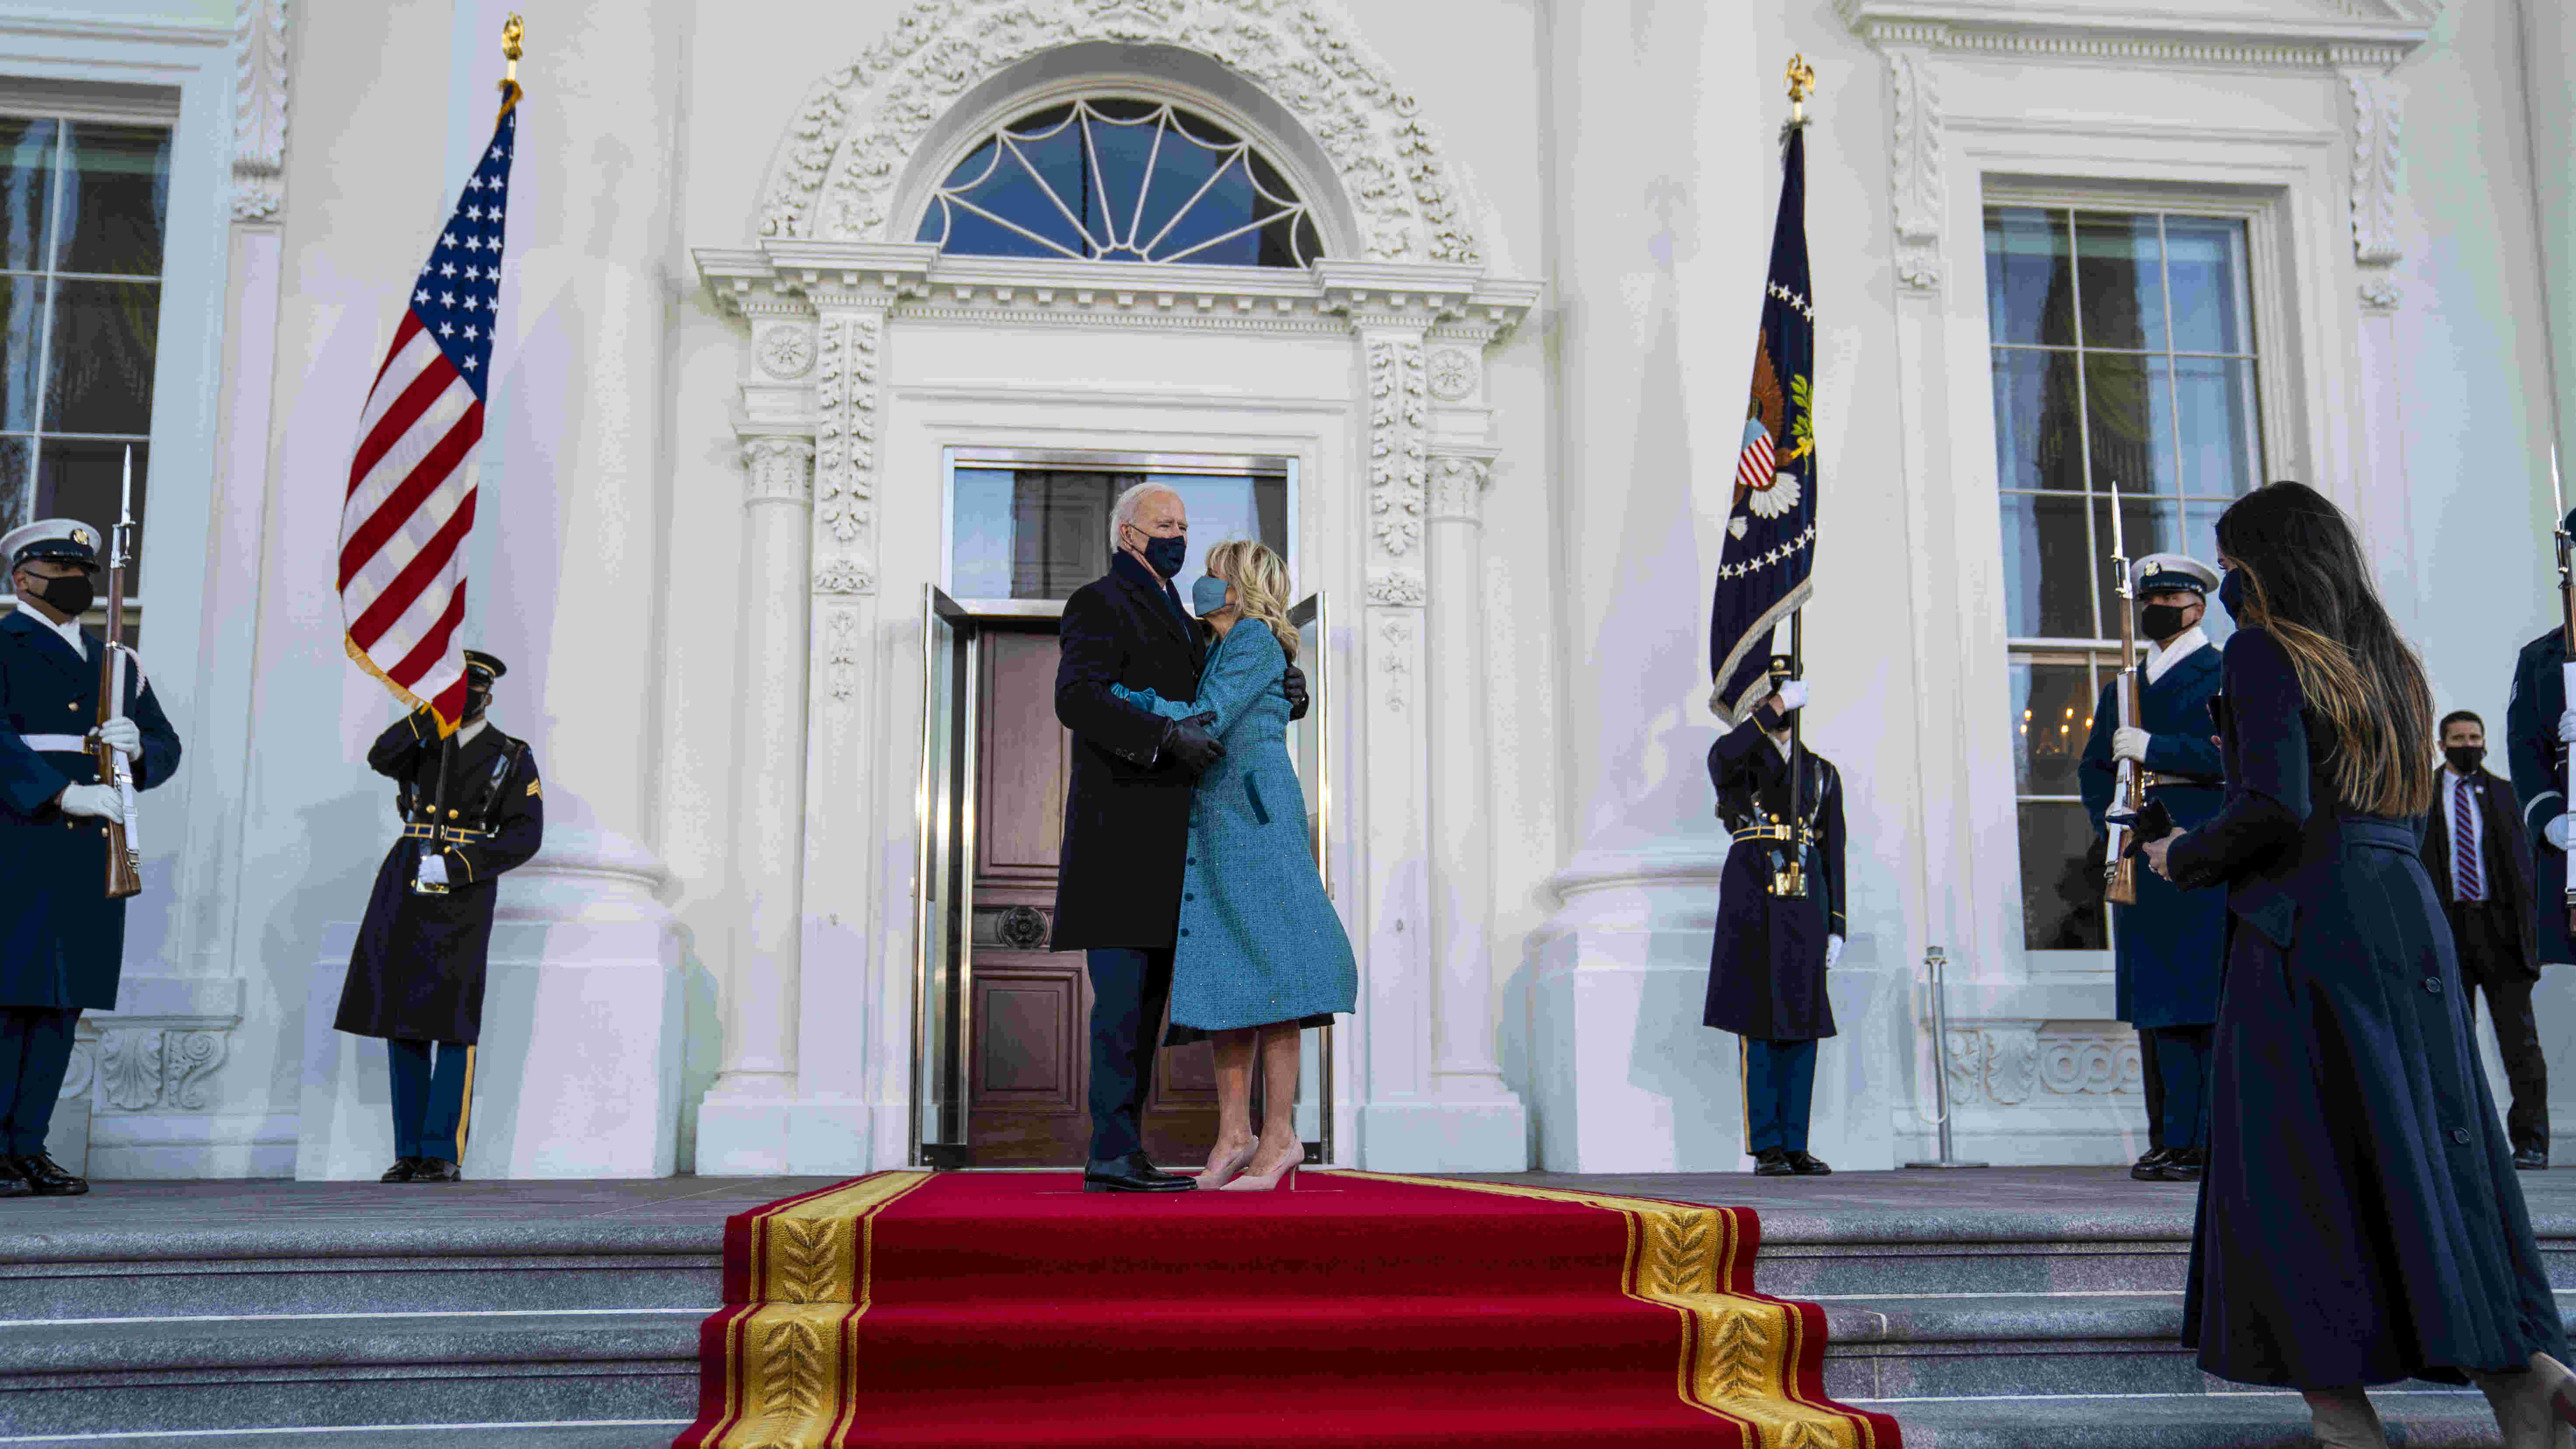 President Joe Biden and first lady Jill Biden embrace before entering the White House on Inauguration Day in Washington, Jan. 20, 2021.